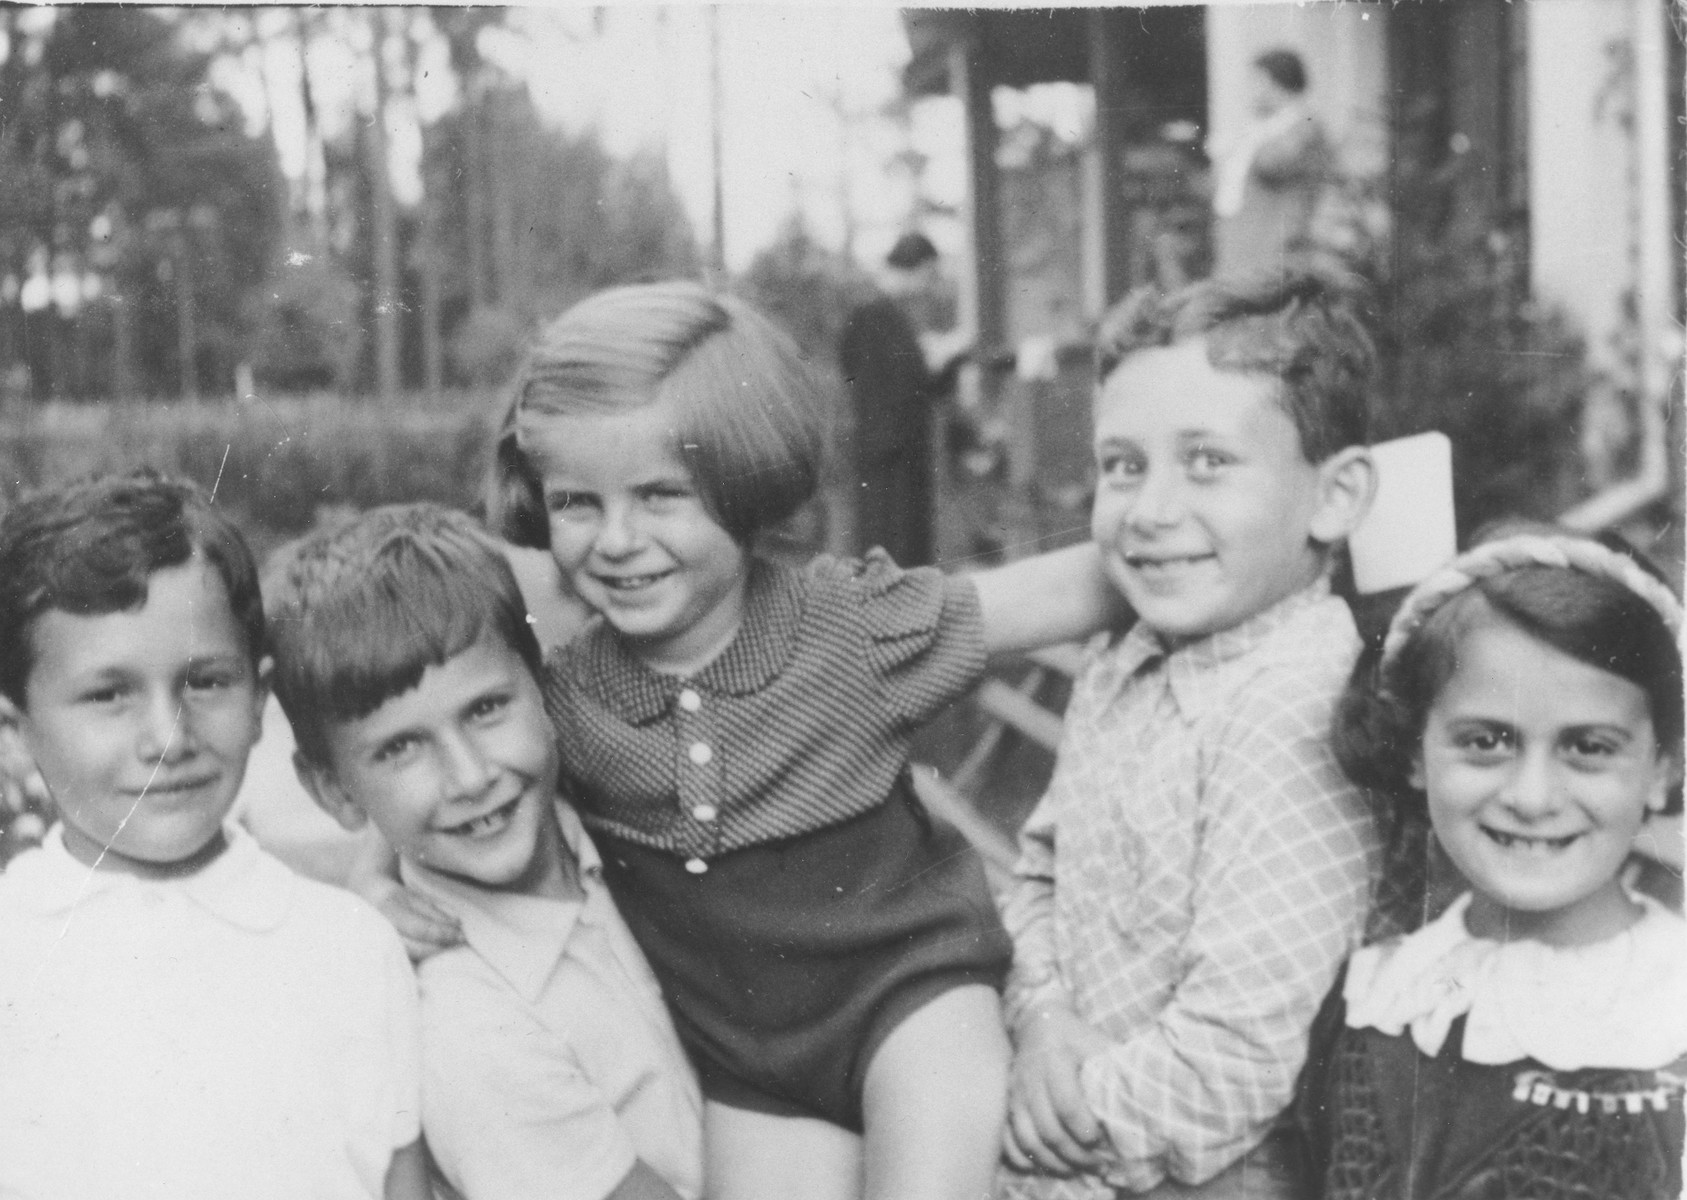 Five Jewish children play together in the resort town of Krynica.